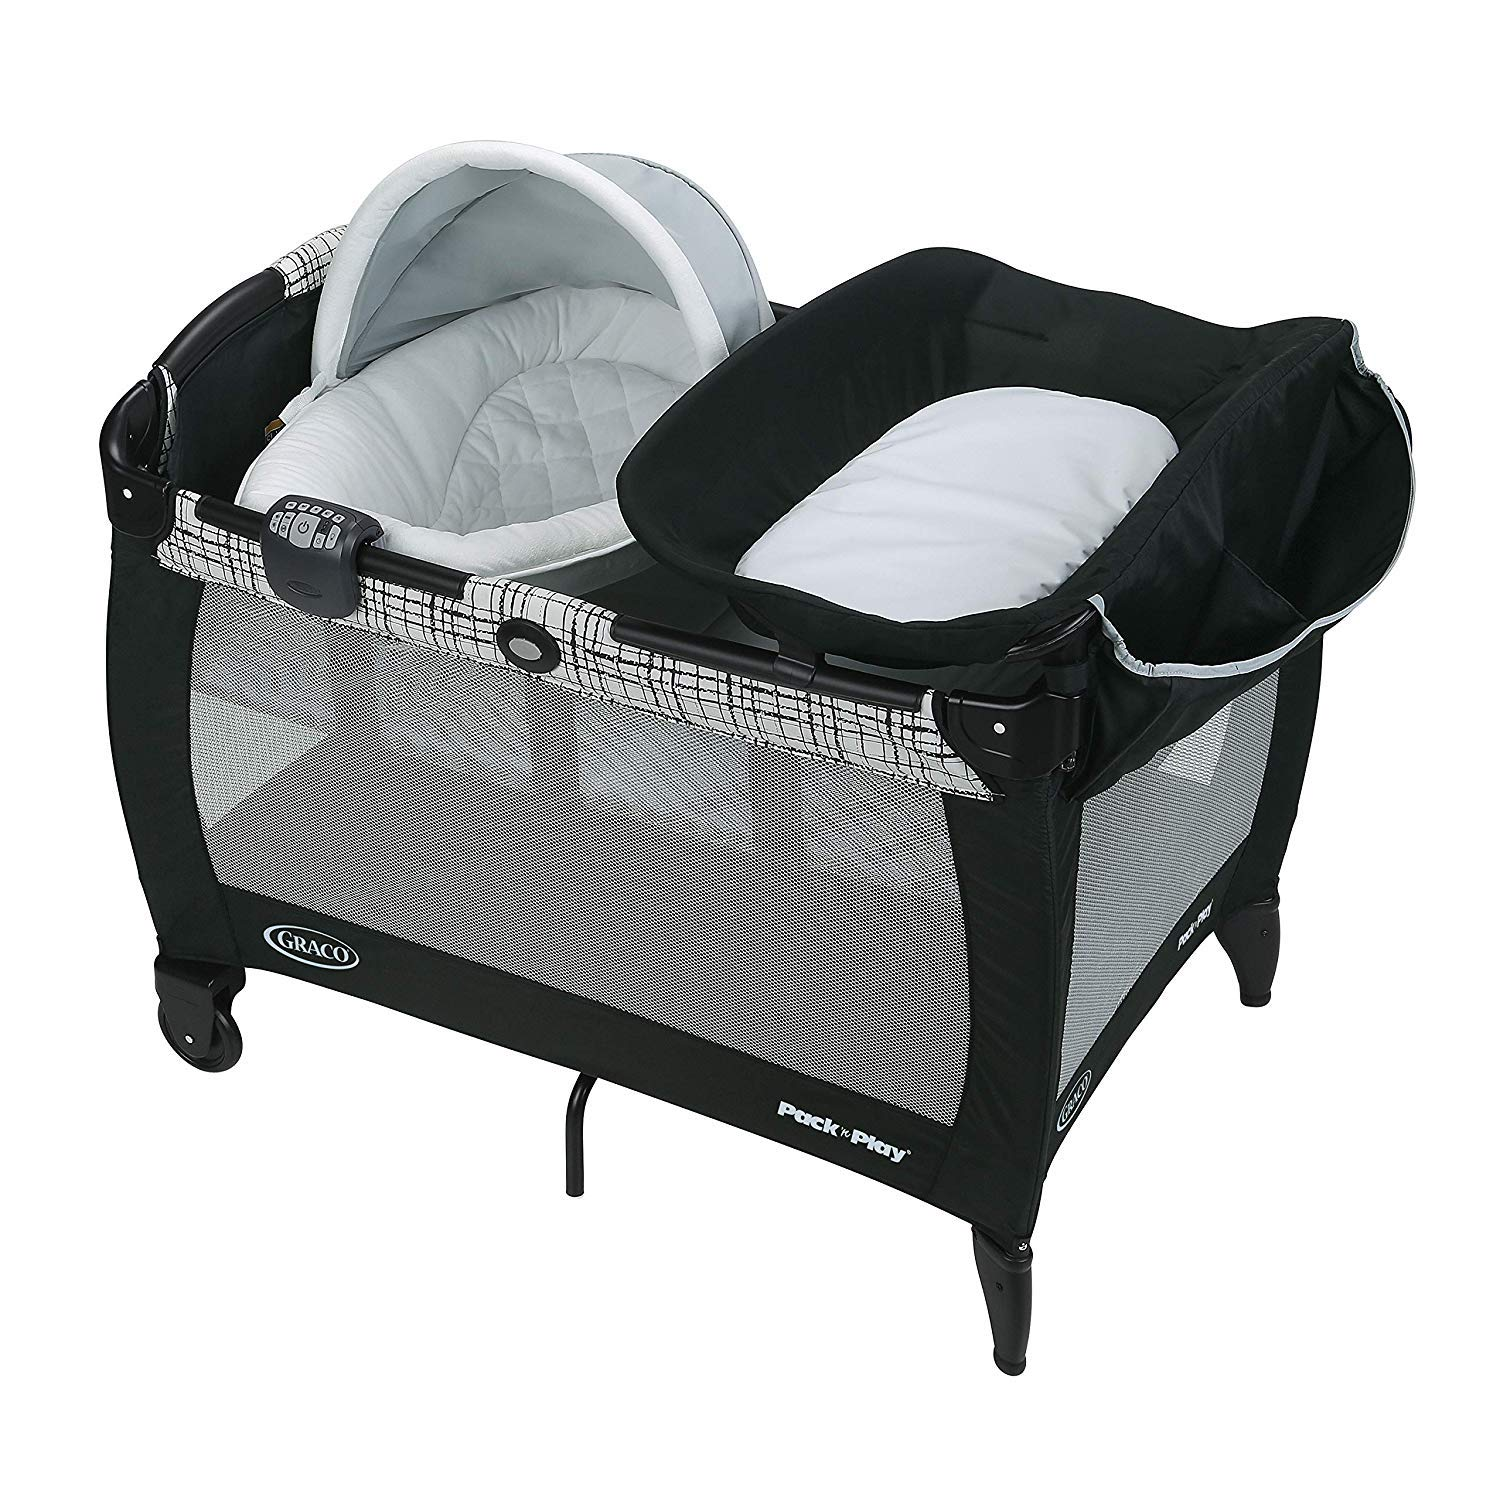 Graco Pack 'n Play Newborn Seat Oasis with Soothe Surround - Teigen